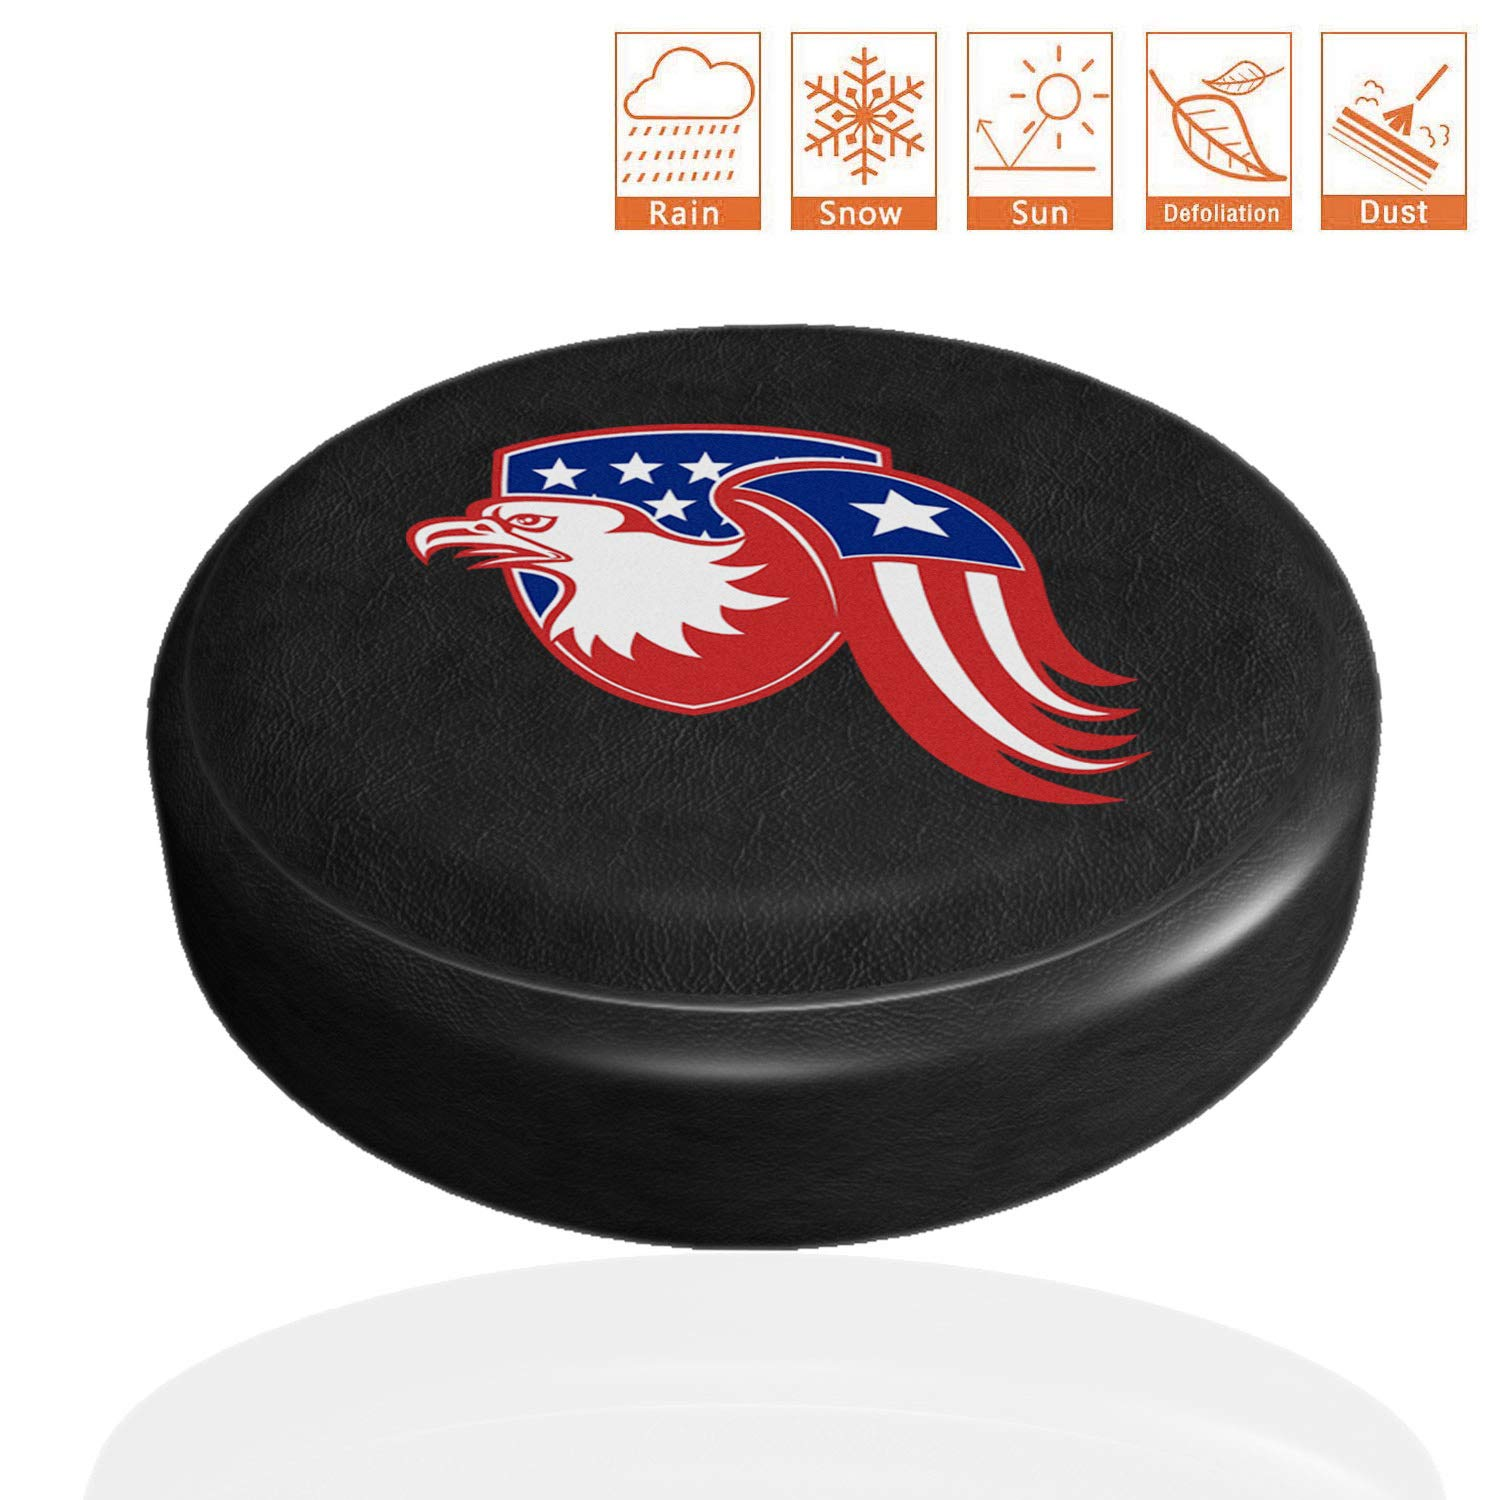 National Flag Wheel Diameter 30-31 Weatherproof Tire Protectors Trailer Truck and Many Vehicle SUV AmFor Spare Tire Cover RV Universal Fit for Jeep